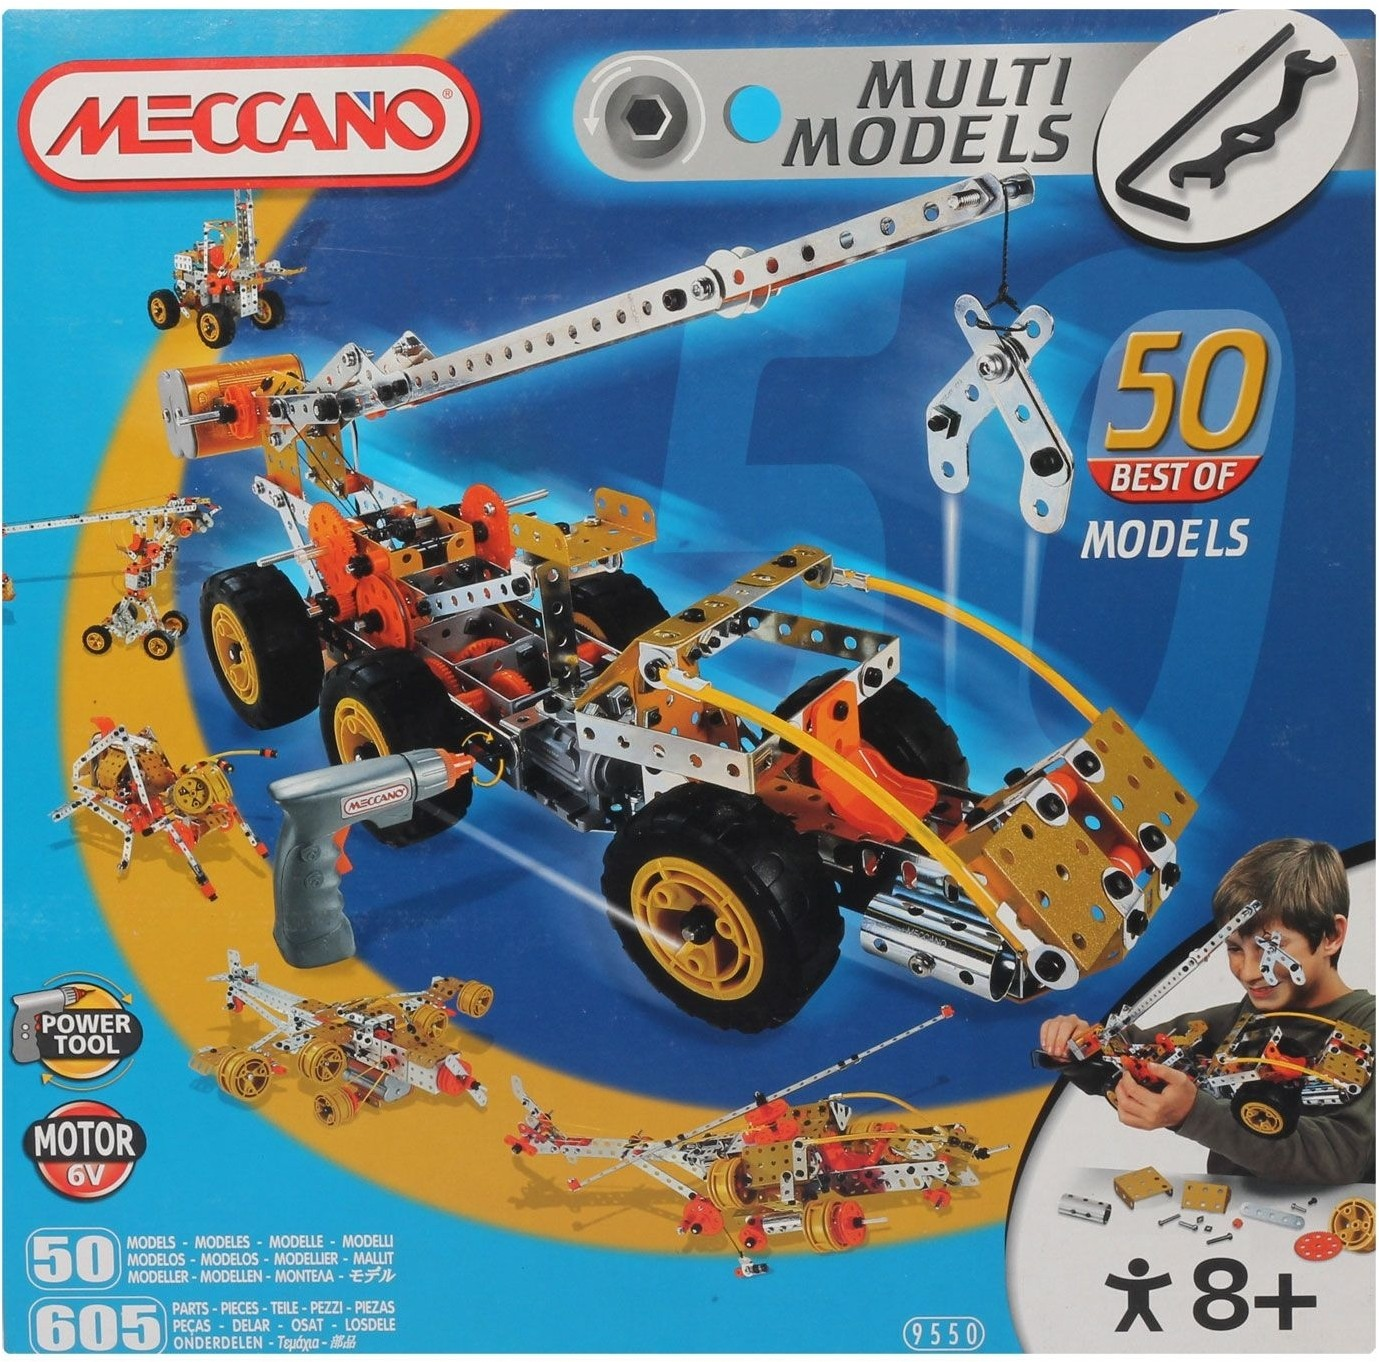 Best Meccano Sets And Toys For Kids : Meccano best of model set shop